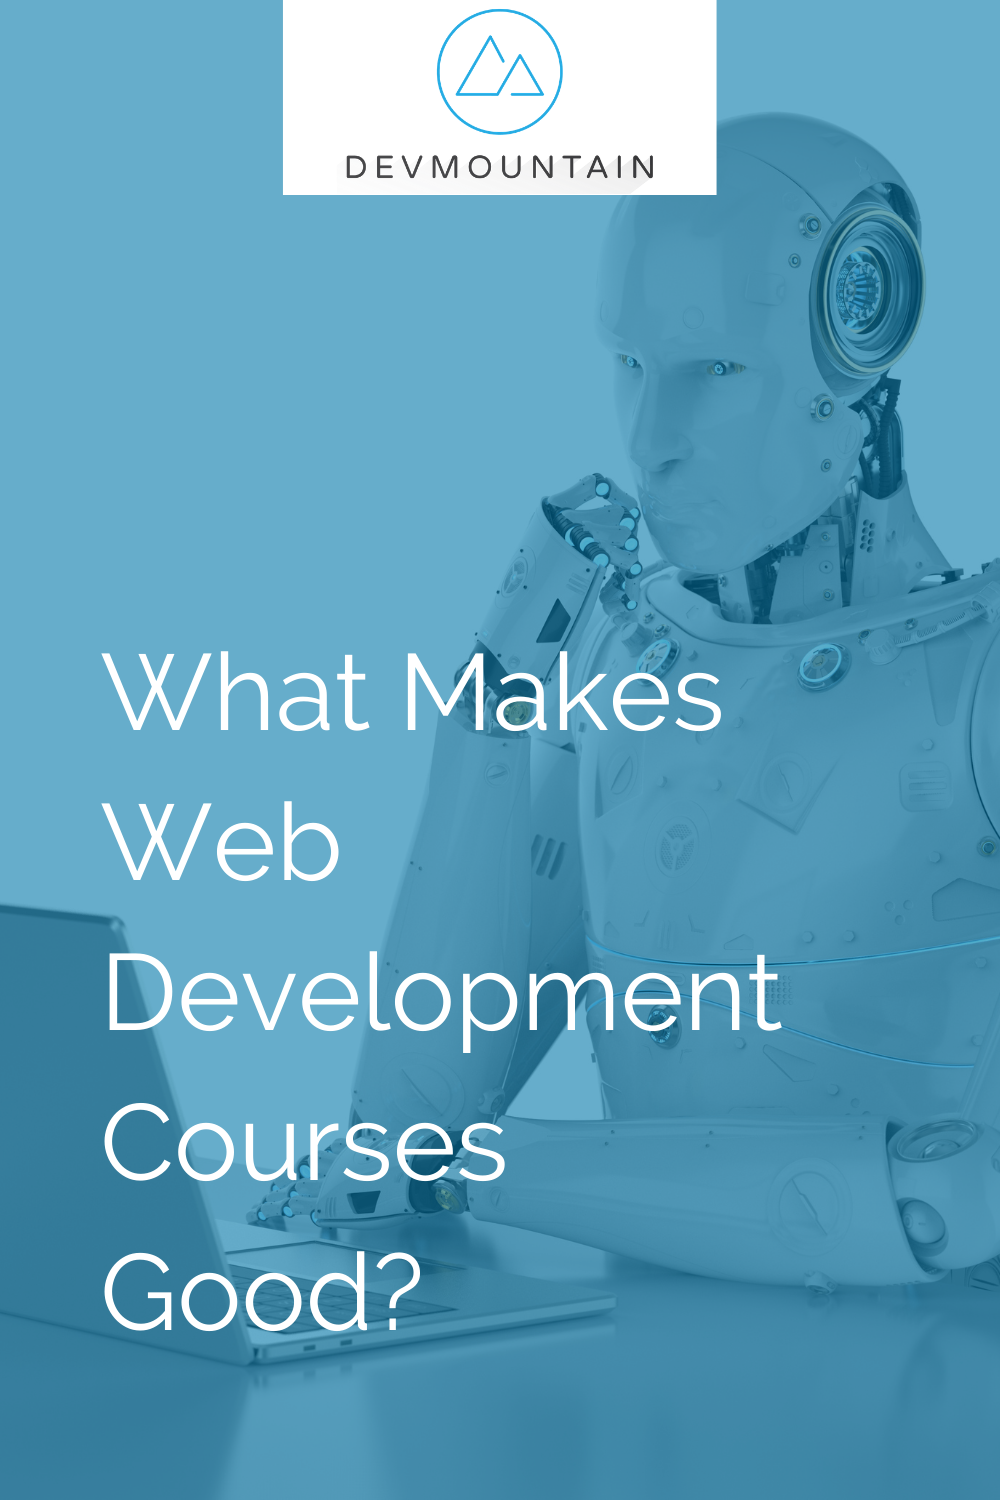 What Makes Web Development Courses Good?